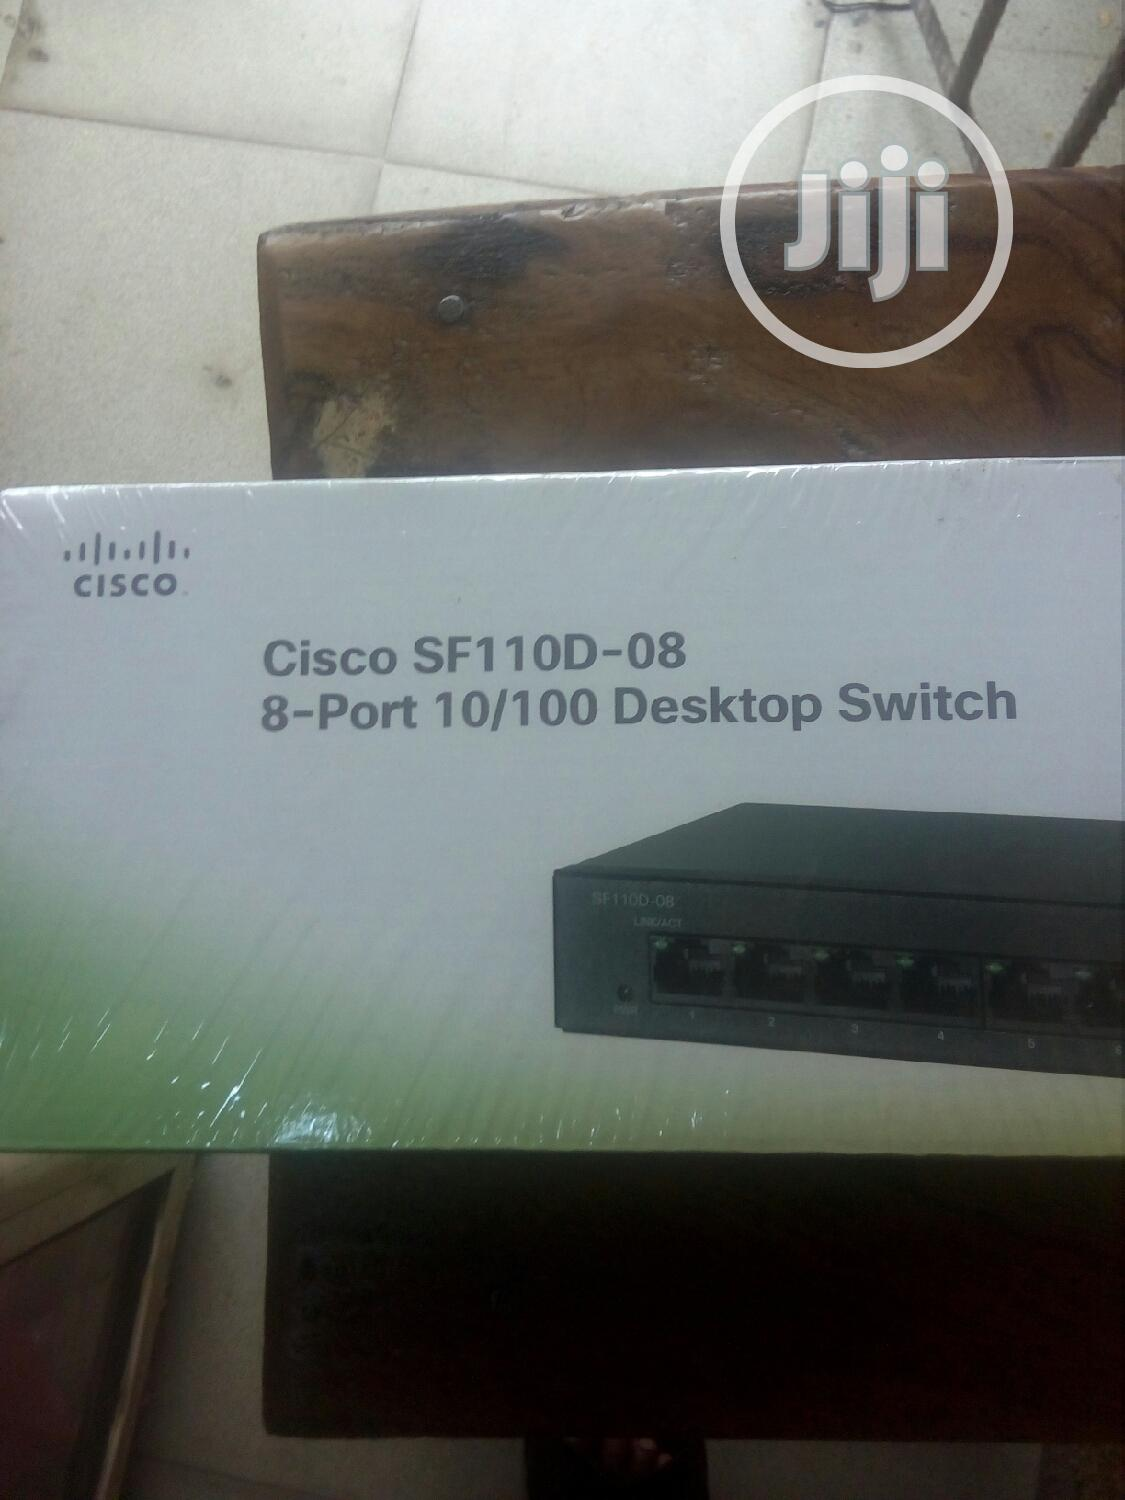 Cisco Sf 110d-08. 8port 10/100 Desktop Switch